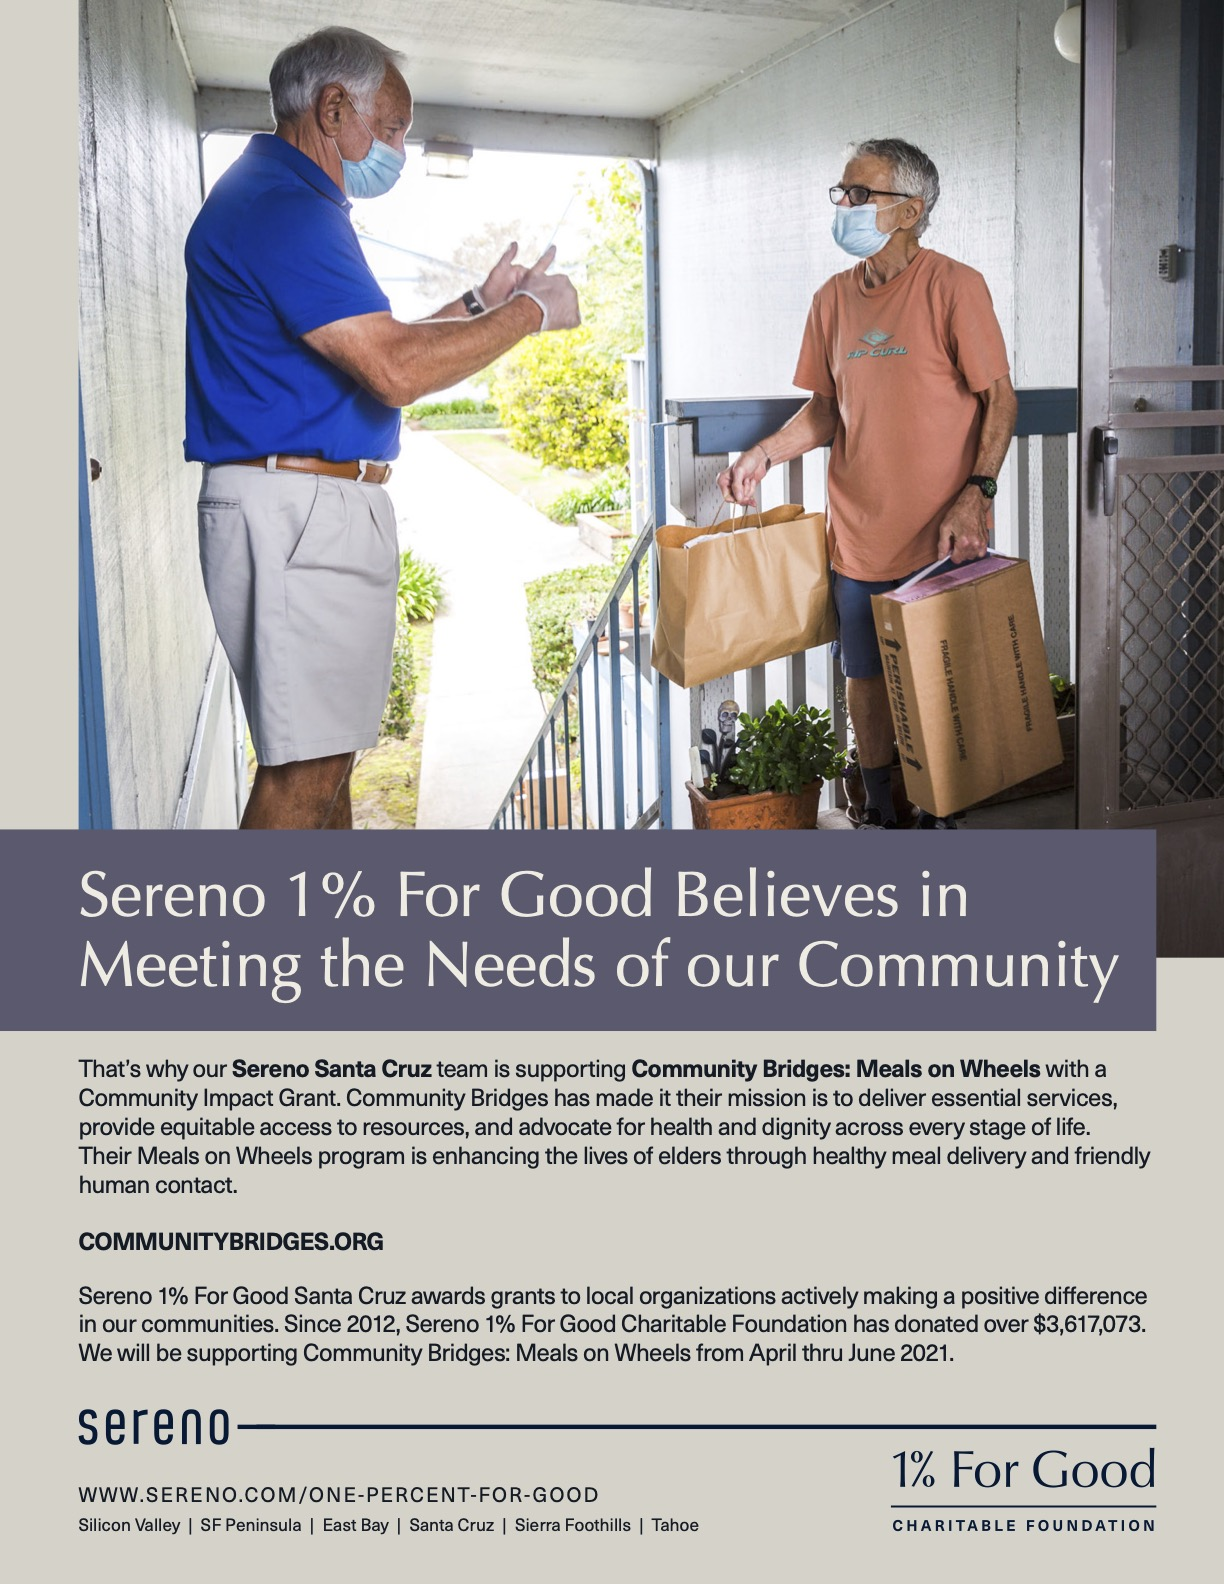 Sereno_OnePercent_SC_Community Bridges Meals on Wheels_Flyer